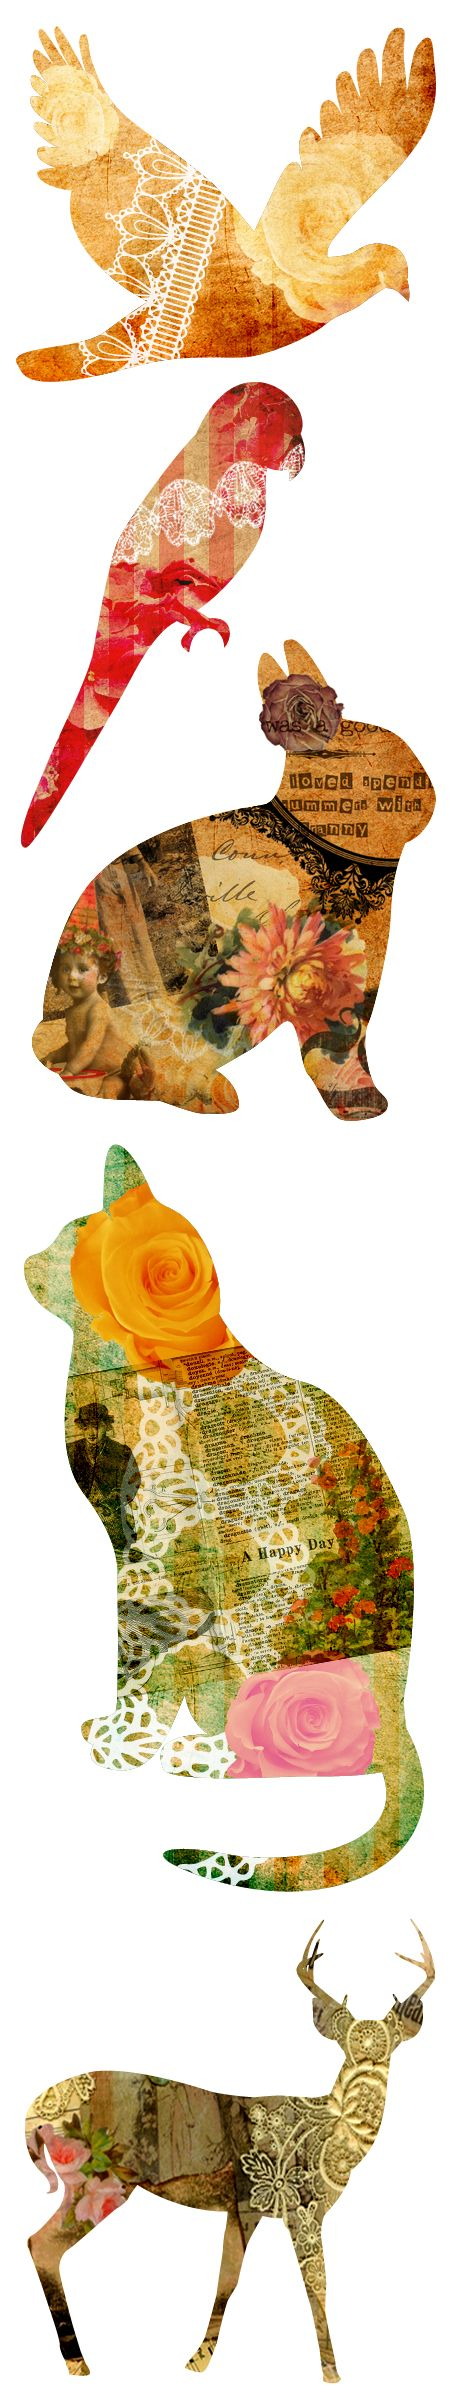 Collaged animal silhouettes - these would make great tags, or gorgeous printed onto transfer paper and ironed onto a pillowcase.